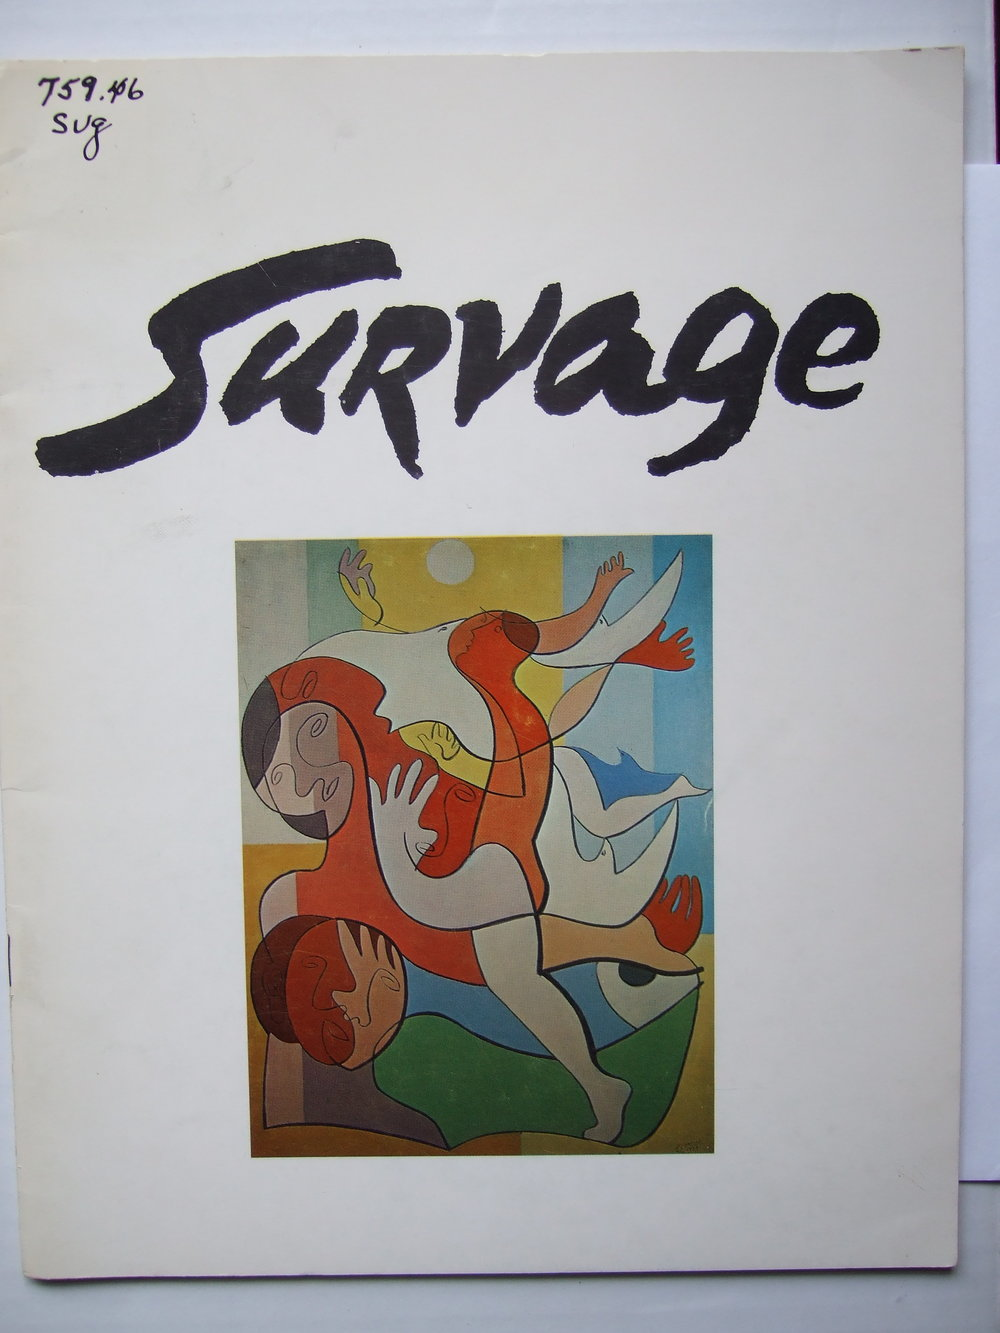 Survage. Catalogue of exhibition in New York, 1970.